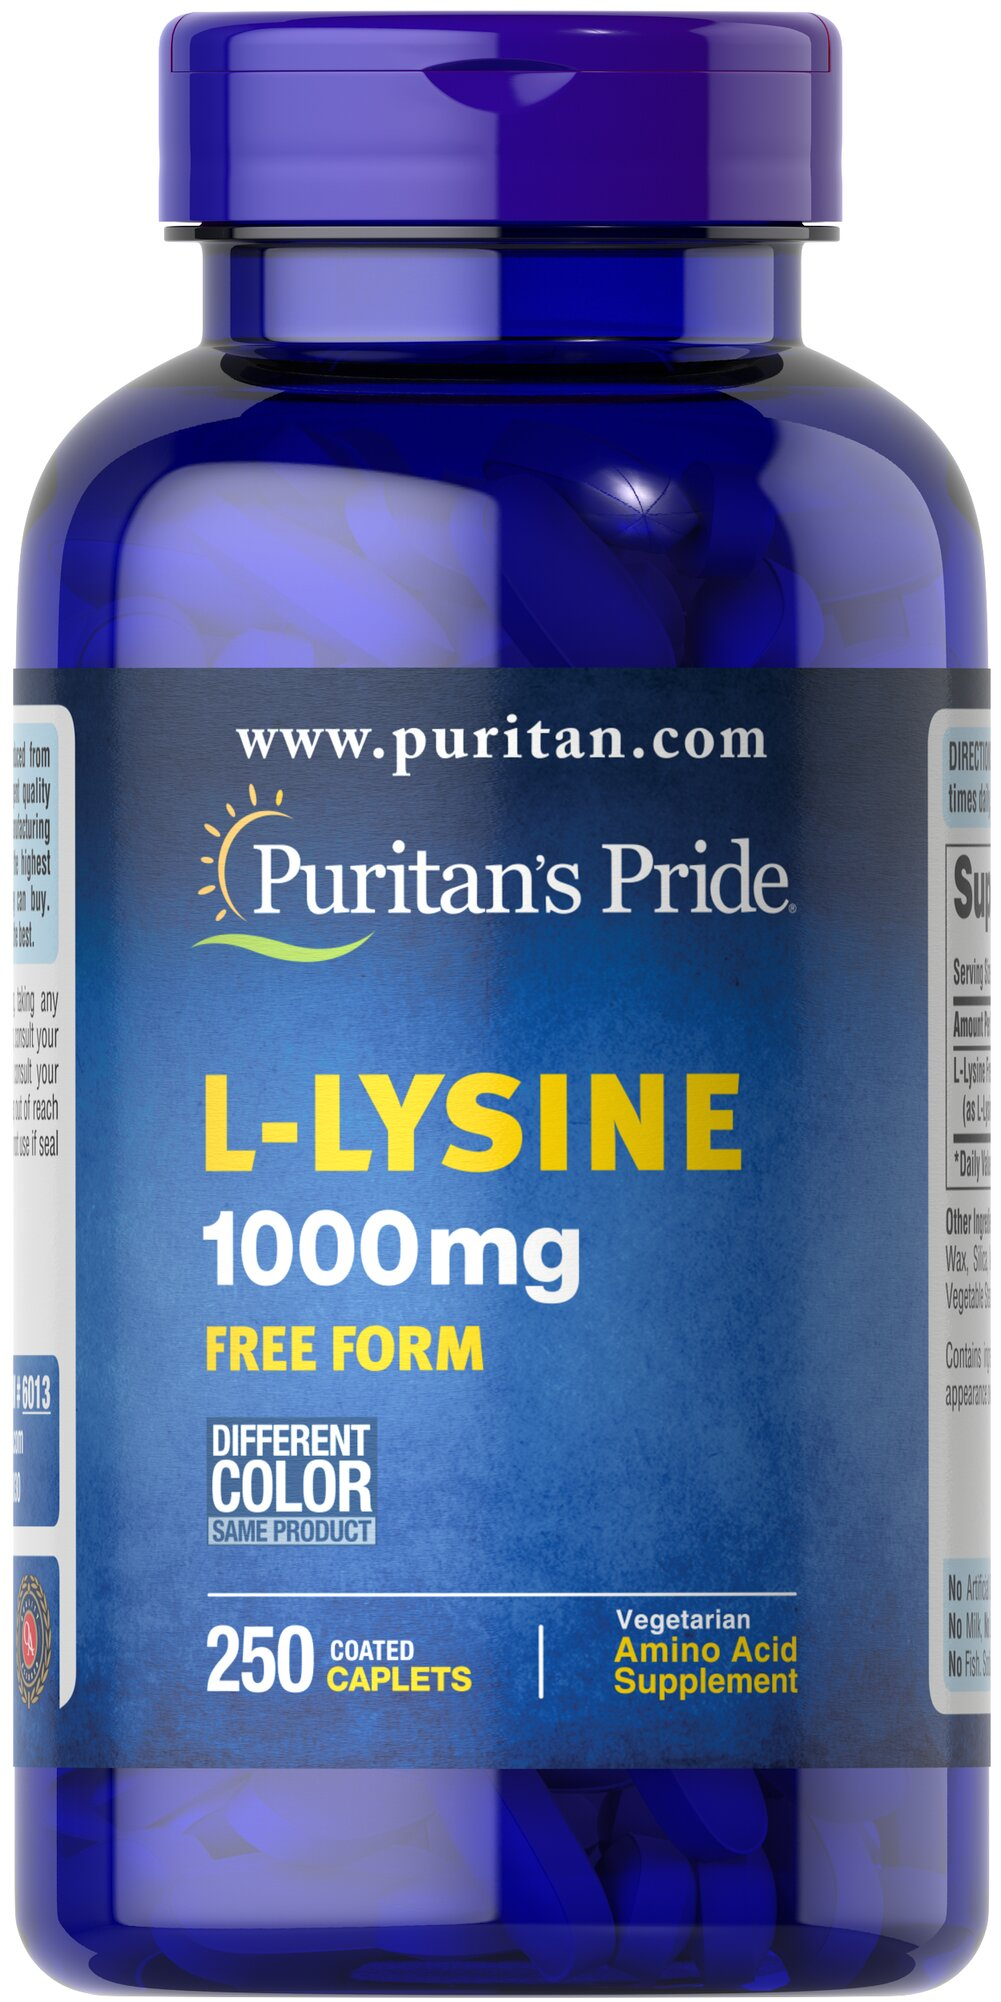 L-Lysine 1000 mg <p>For Balanced Nutrition and Health**</p><p>Lysine is an indispensable amino acid that cannot be made by the body.** Amino acids form the basis for protein, which helps construct and maintain the critical structures in the body.** Lysine is also used for the health and integrity of skin.**</p> 250 Tablets 1000 mg $24.99